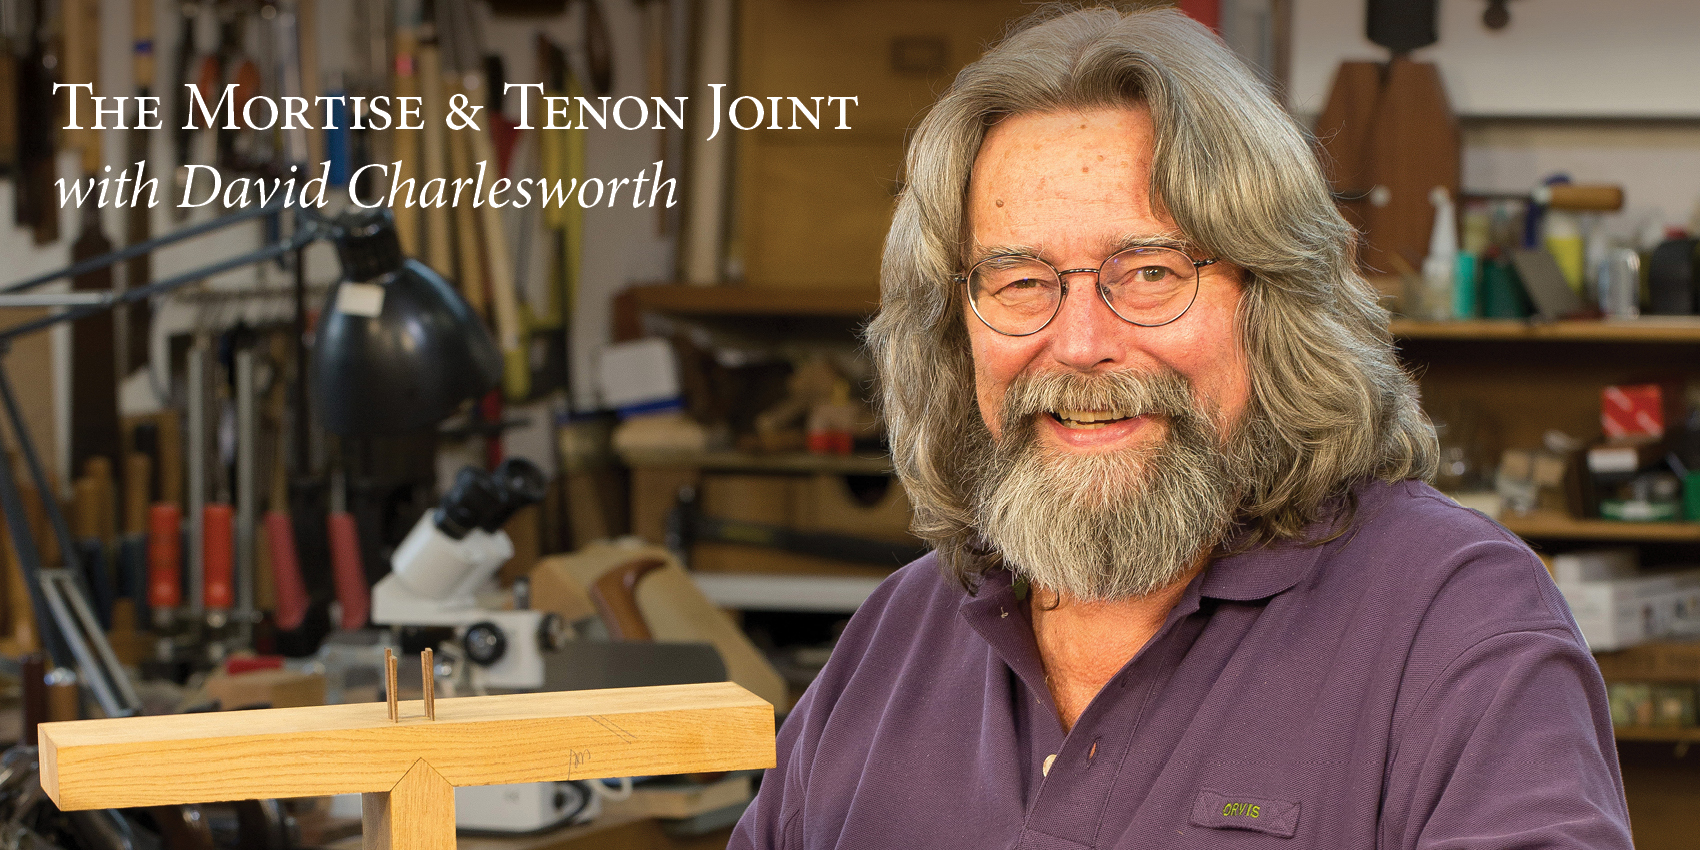 The Mortise & Tenon Joint with David Charlesworth